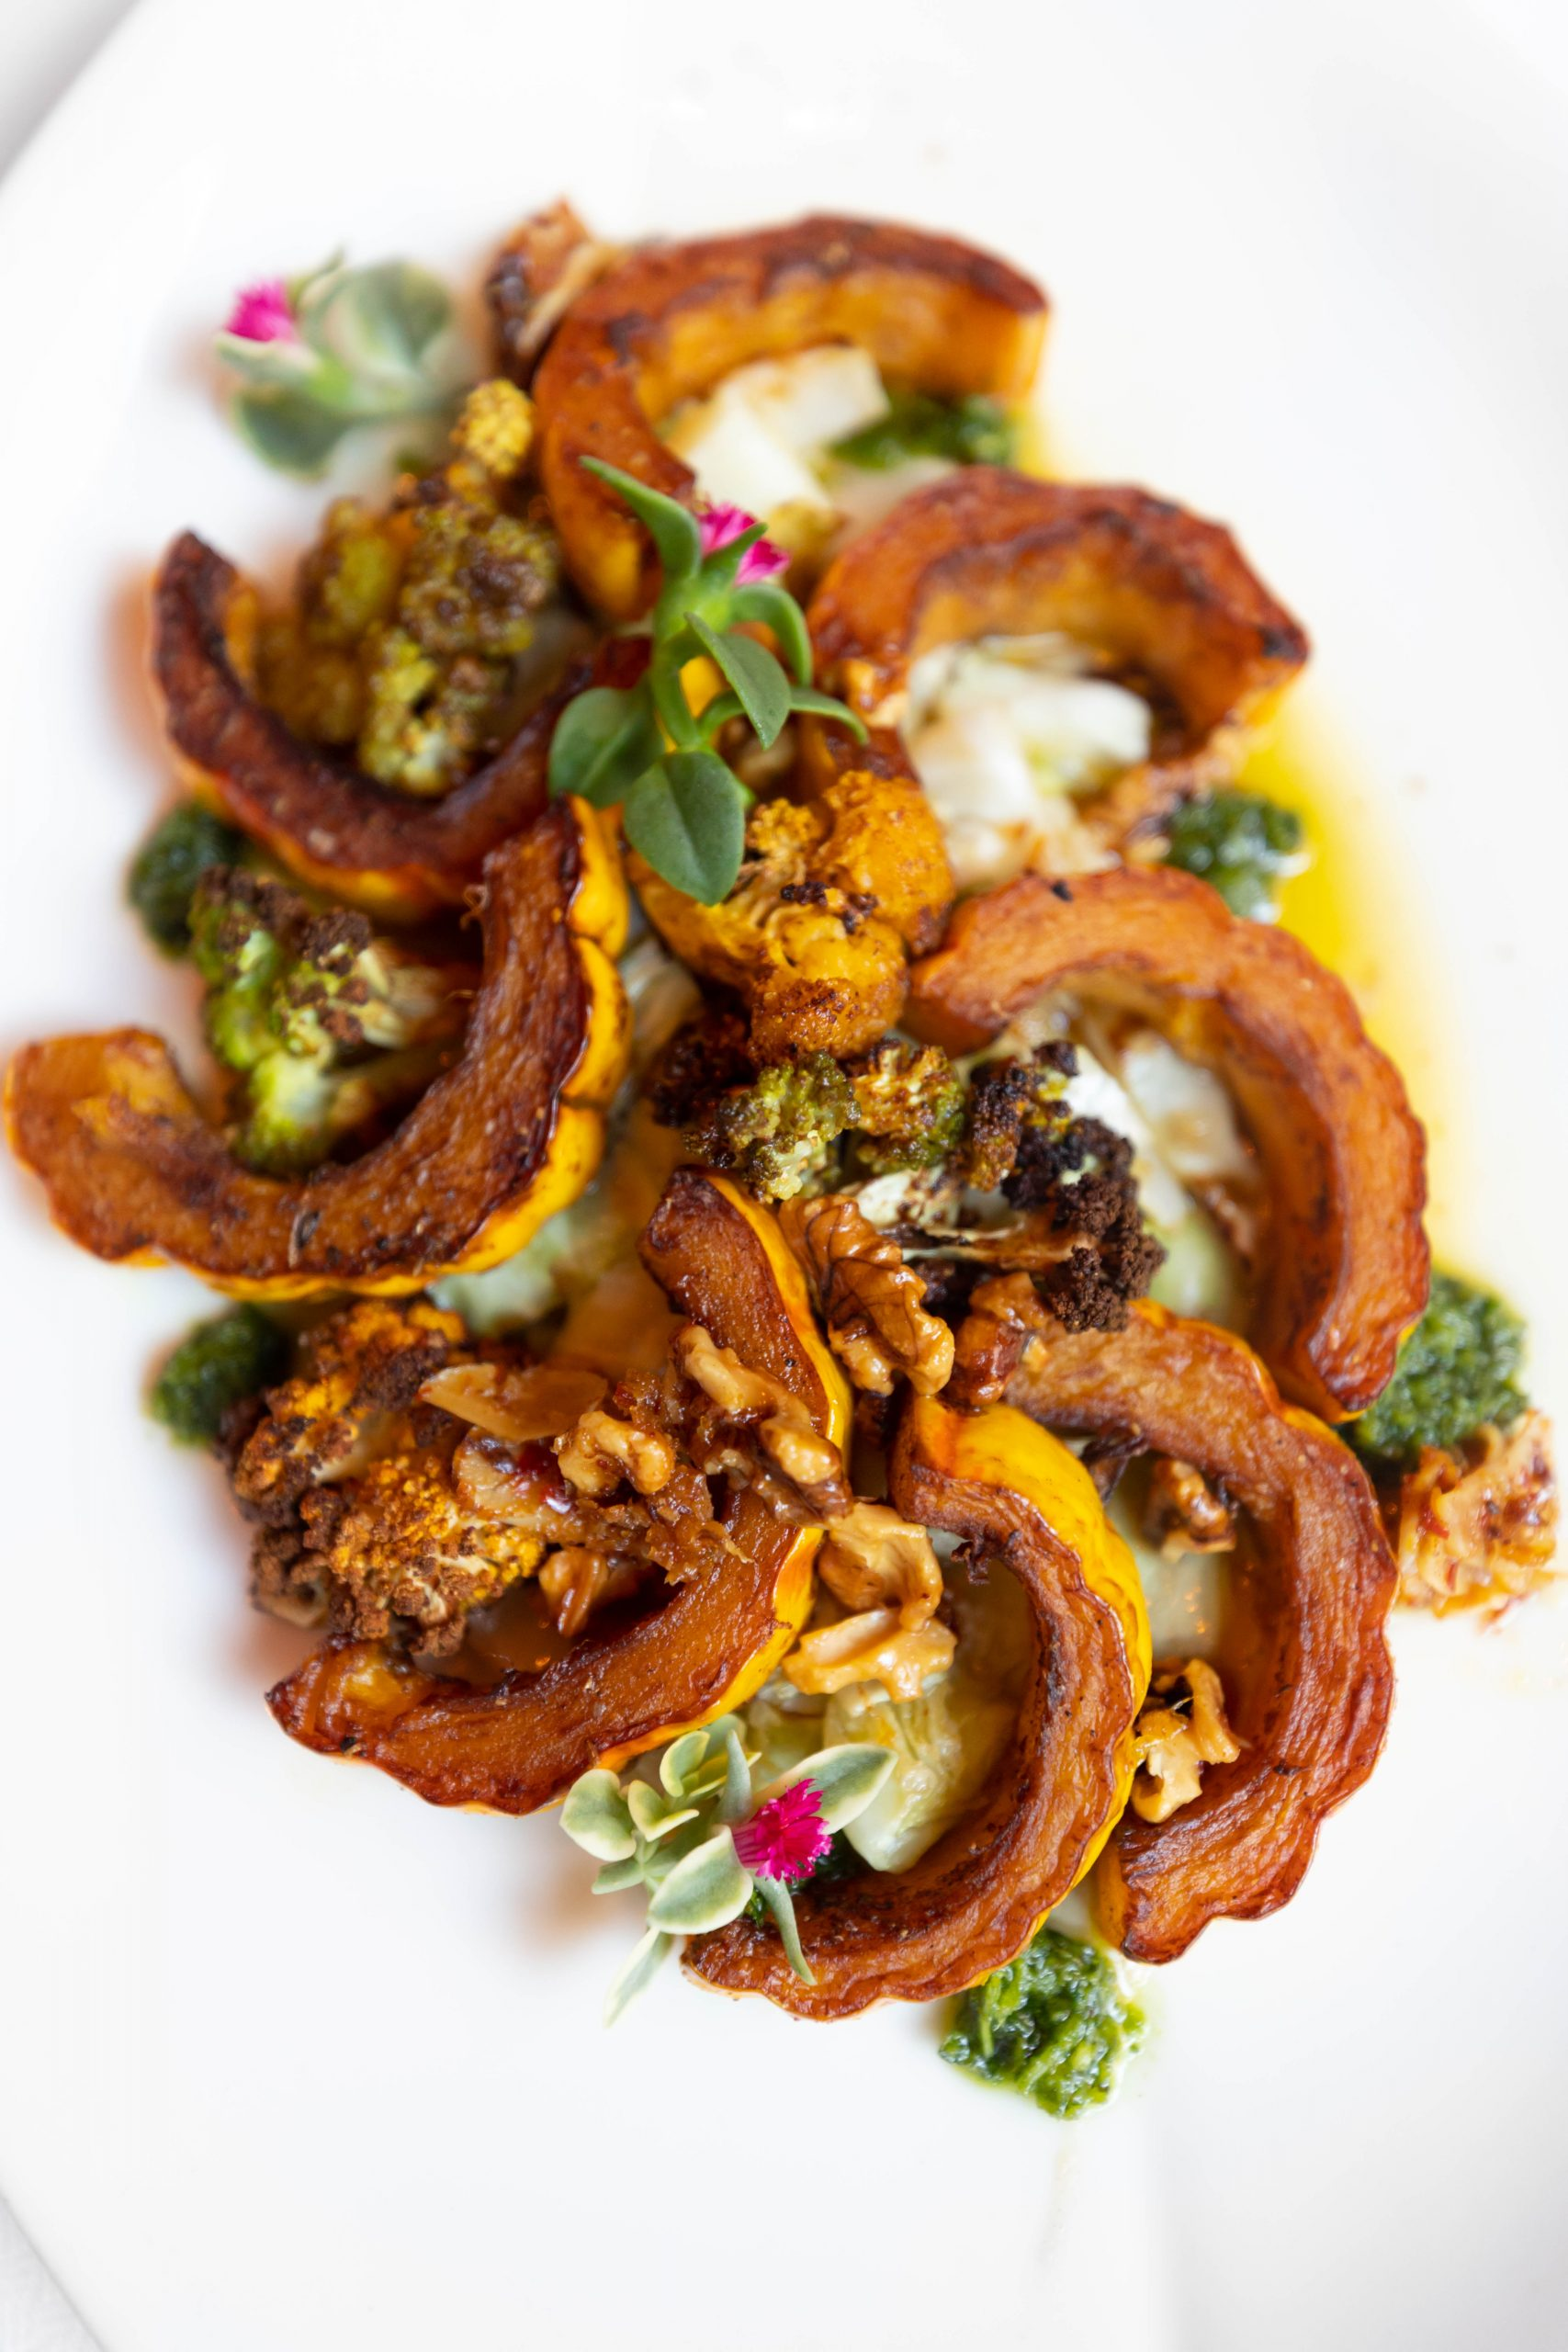 Shawarma Spiced Vegetables at Charleston Grill from Chef Michelle Weaver Inside Belmond Charleston Place Luxury Hotel Written & Photographed by Annie Fairfax